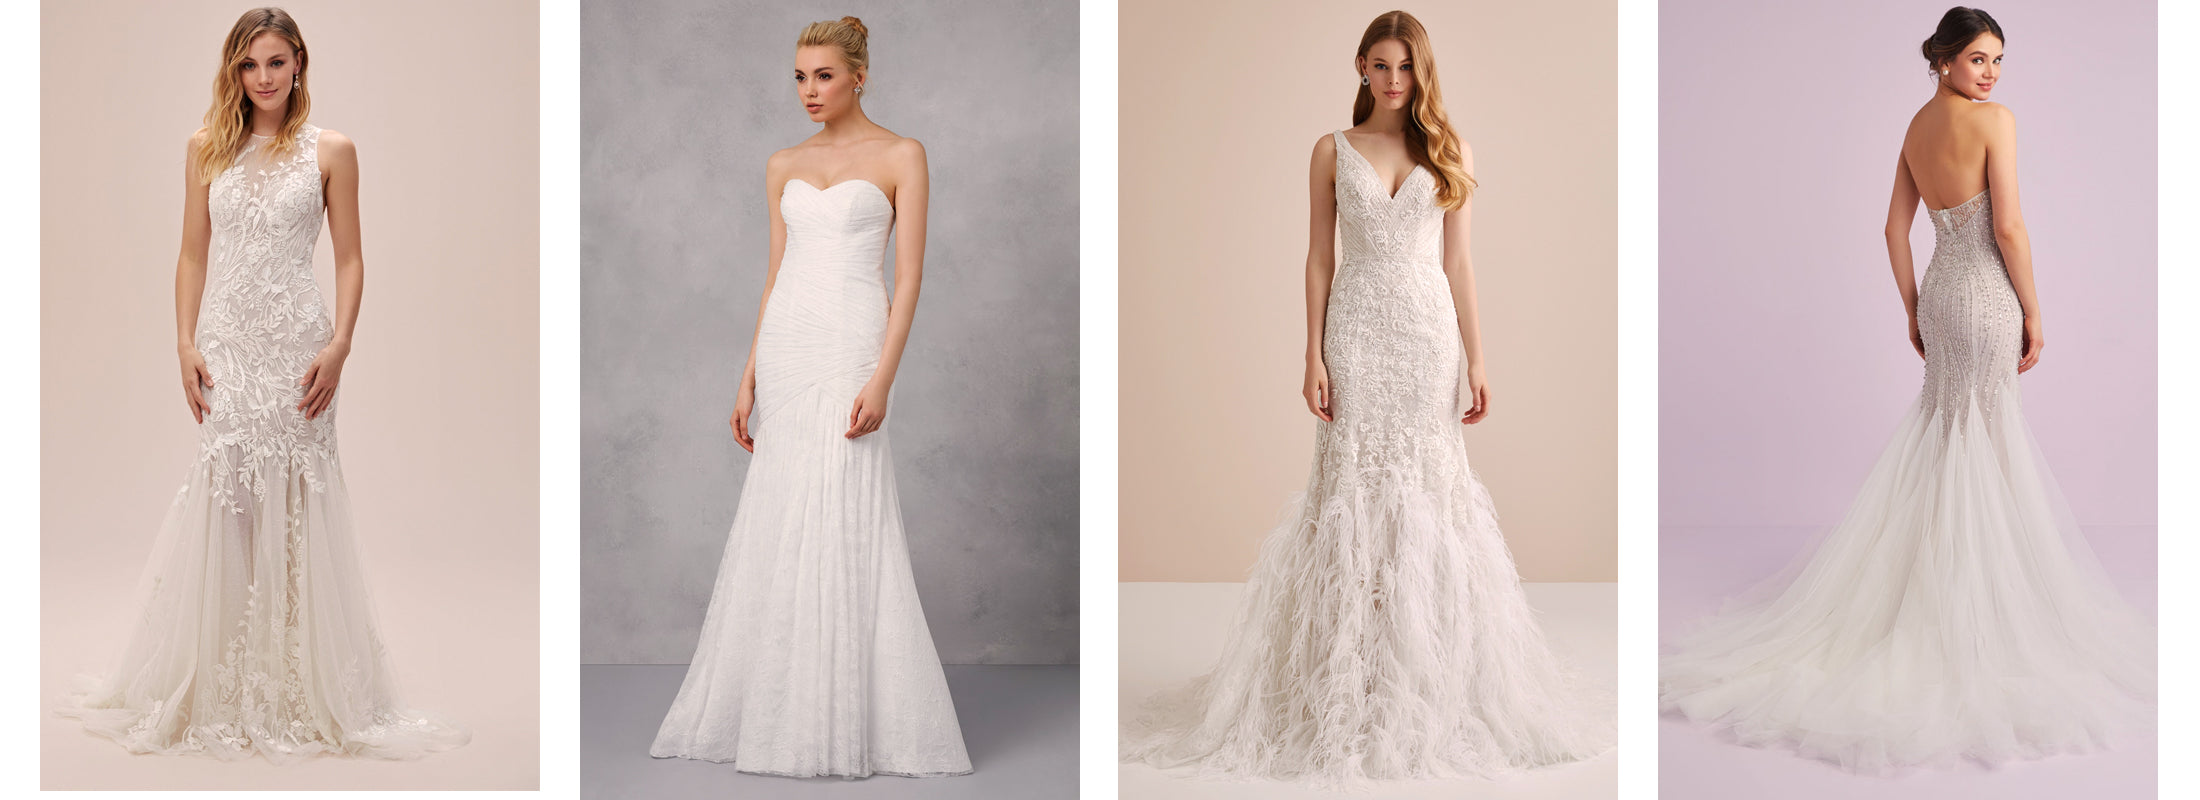 Oleg Cassini Mermaid and Trumpet Wedding Gowns